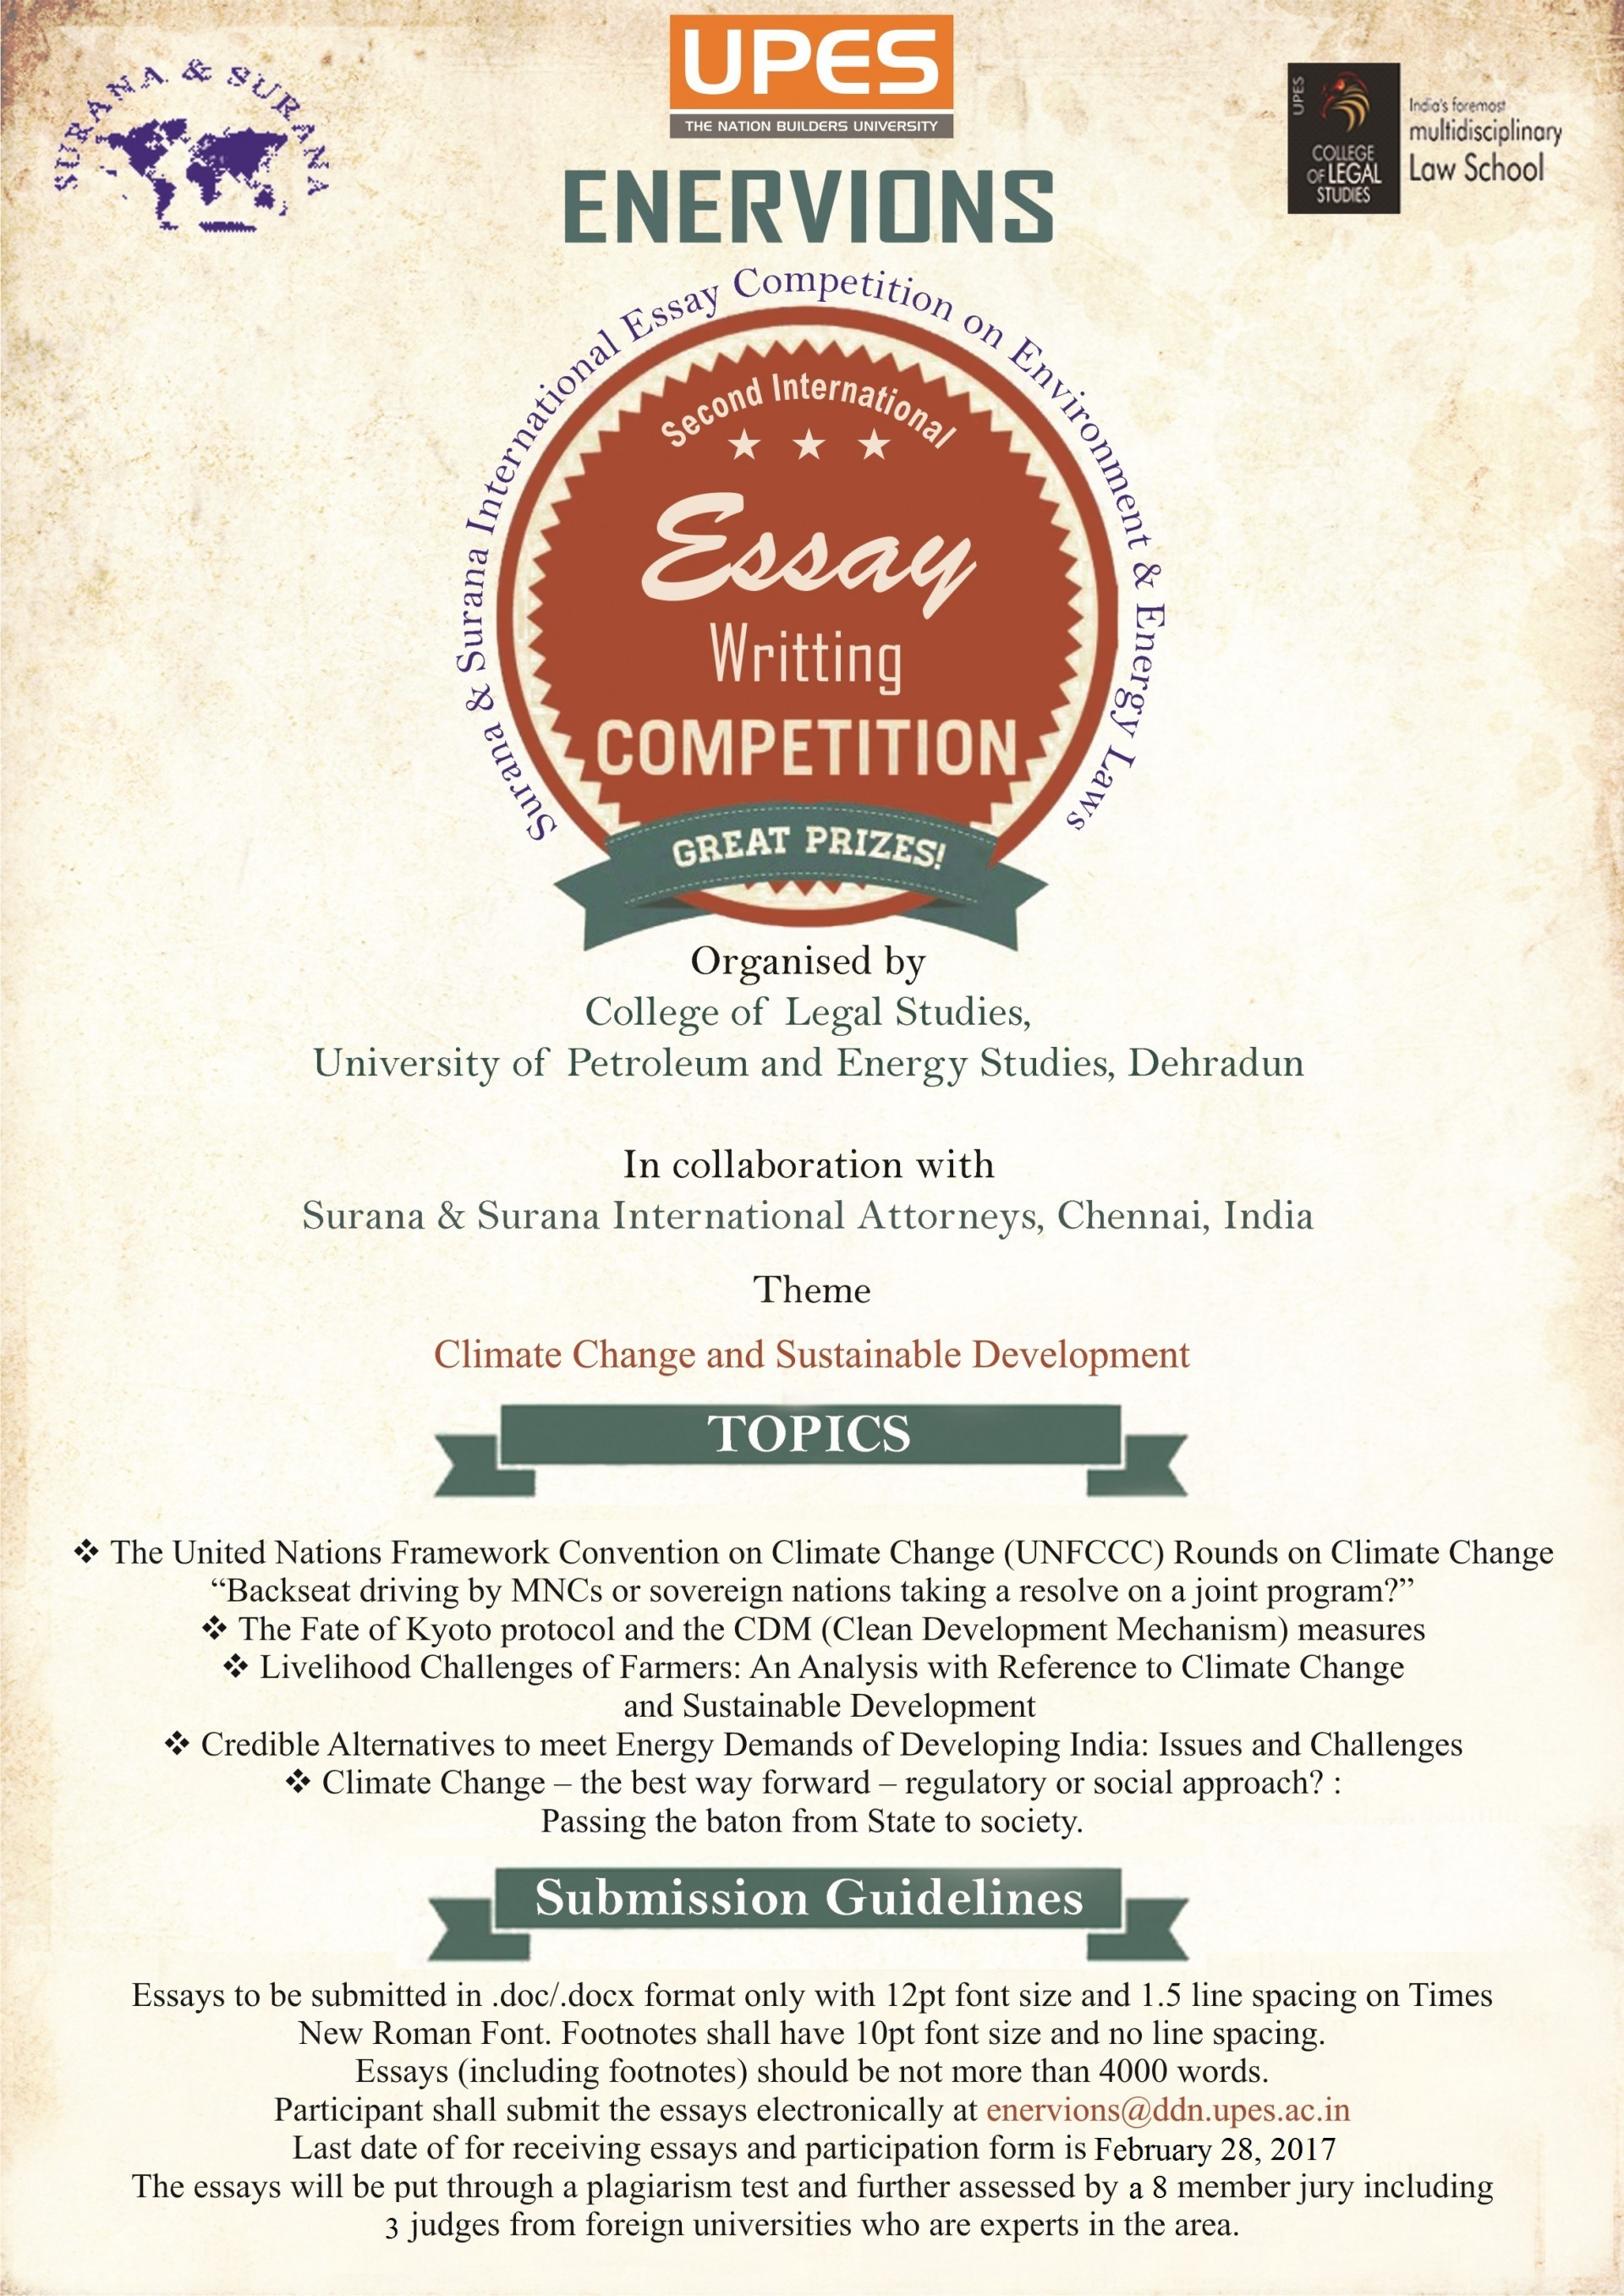 011 Essay Example Writing Incredible Contest Competition For College Students By Essayhub Sample Mechanics 1920